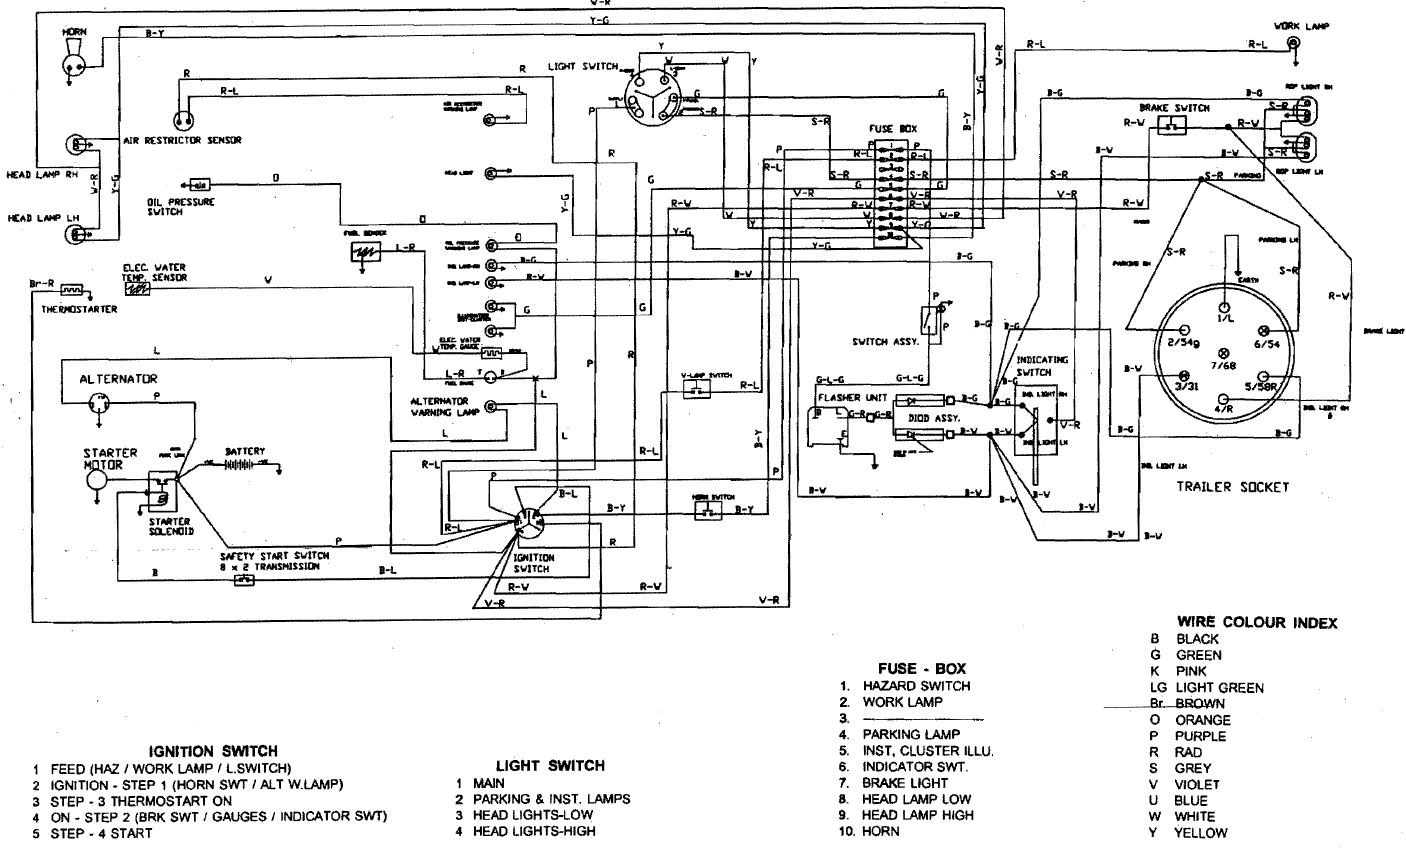 Kubota Wiring Harness Diagram - Wiring Diagram Site on kubota l245h, kubota fz2100 4wd zero turn, kubota 3000 series, kubota b7200hst, kubota b8200, kubota power steering cylinder, kubota parts, kubota l260, kubota tractor hydraulic oil, kubota fz2400, kubota dealers in texas, kubota b7100, kubota l2250 manual, kubota l235, kubota m7950, kubota b1750 loader, kubota tractor with bucket, kubota l175, kubota 3000 tractor review,